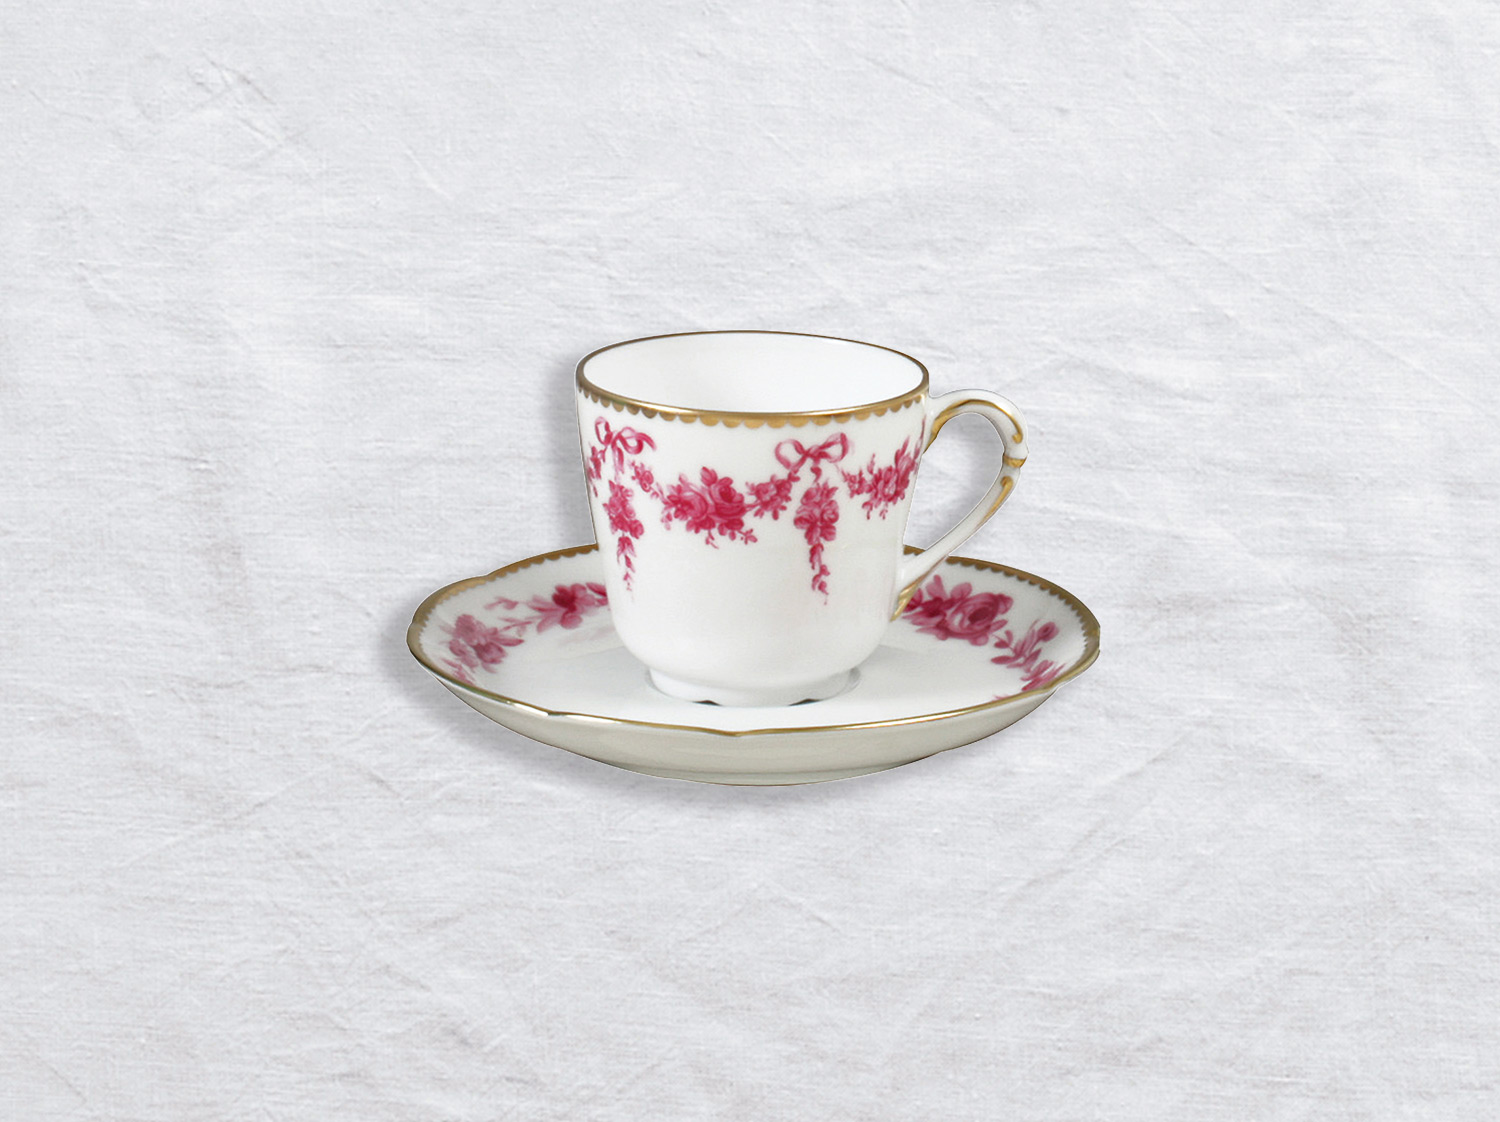 Tasse et soucoupe à café en porcelaine de la collection Louis xv Bernardaud